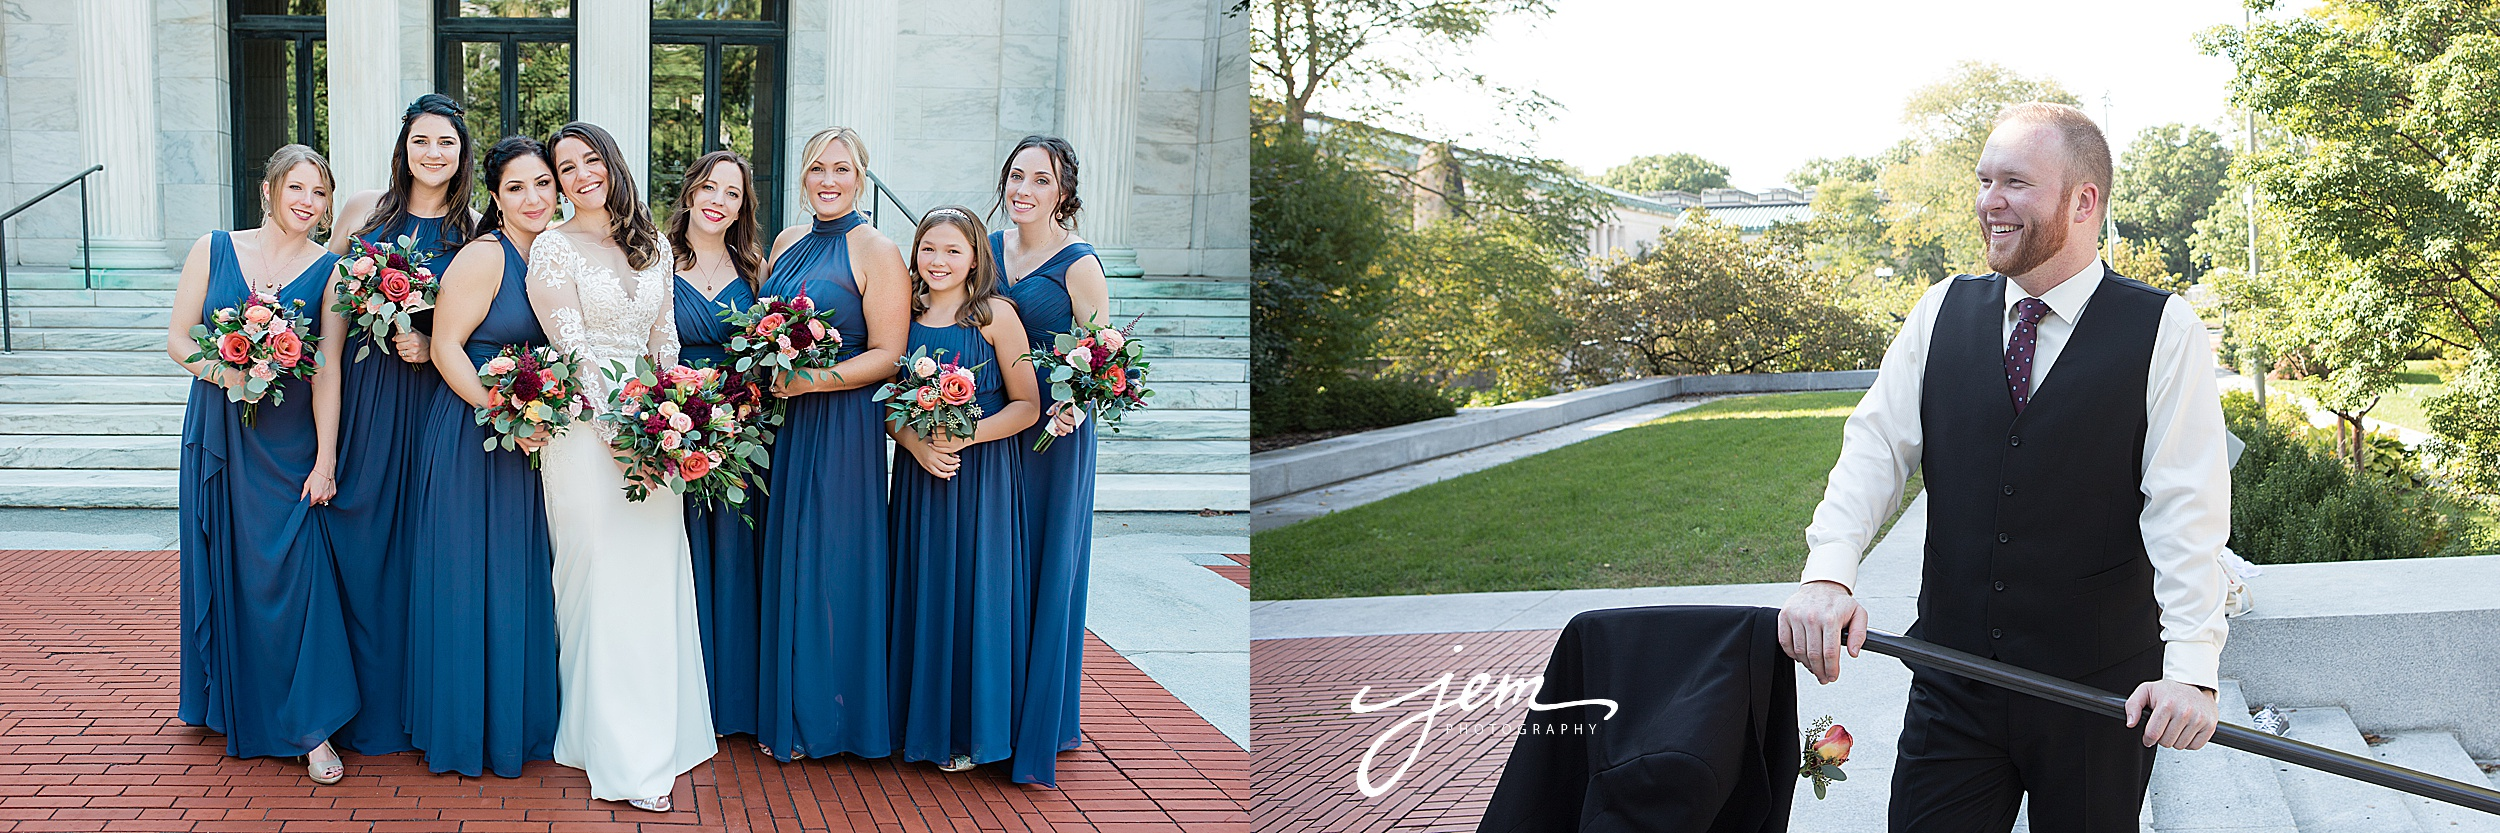 Toledo Country Club Wedding Photographer_0383.jpg